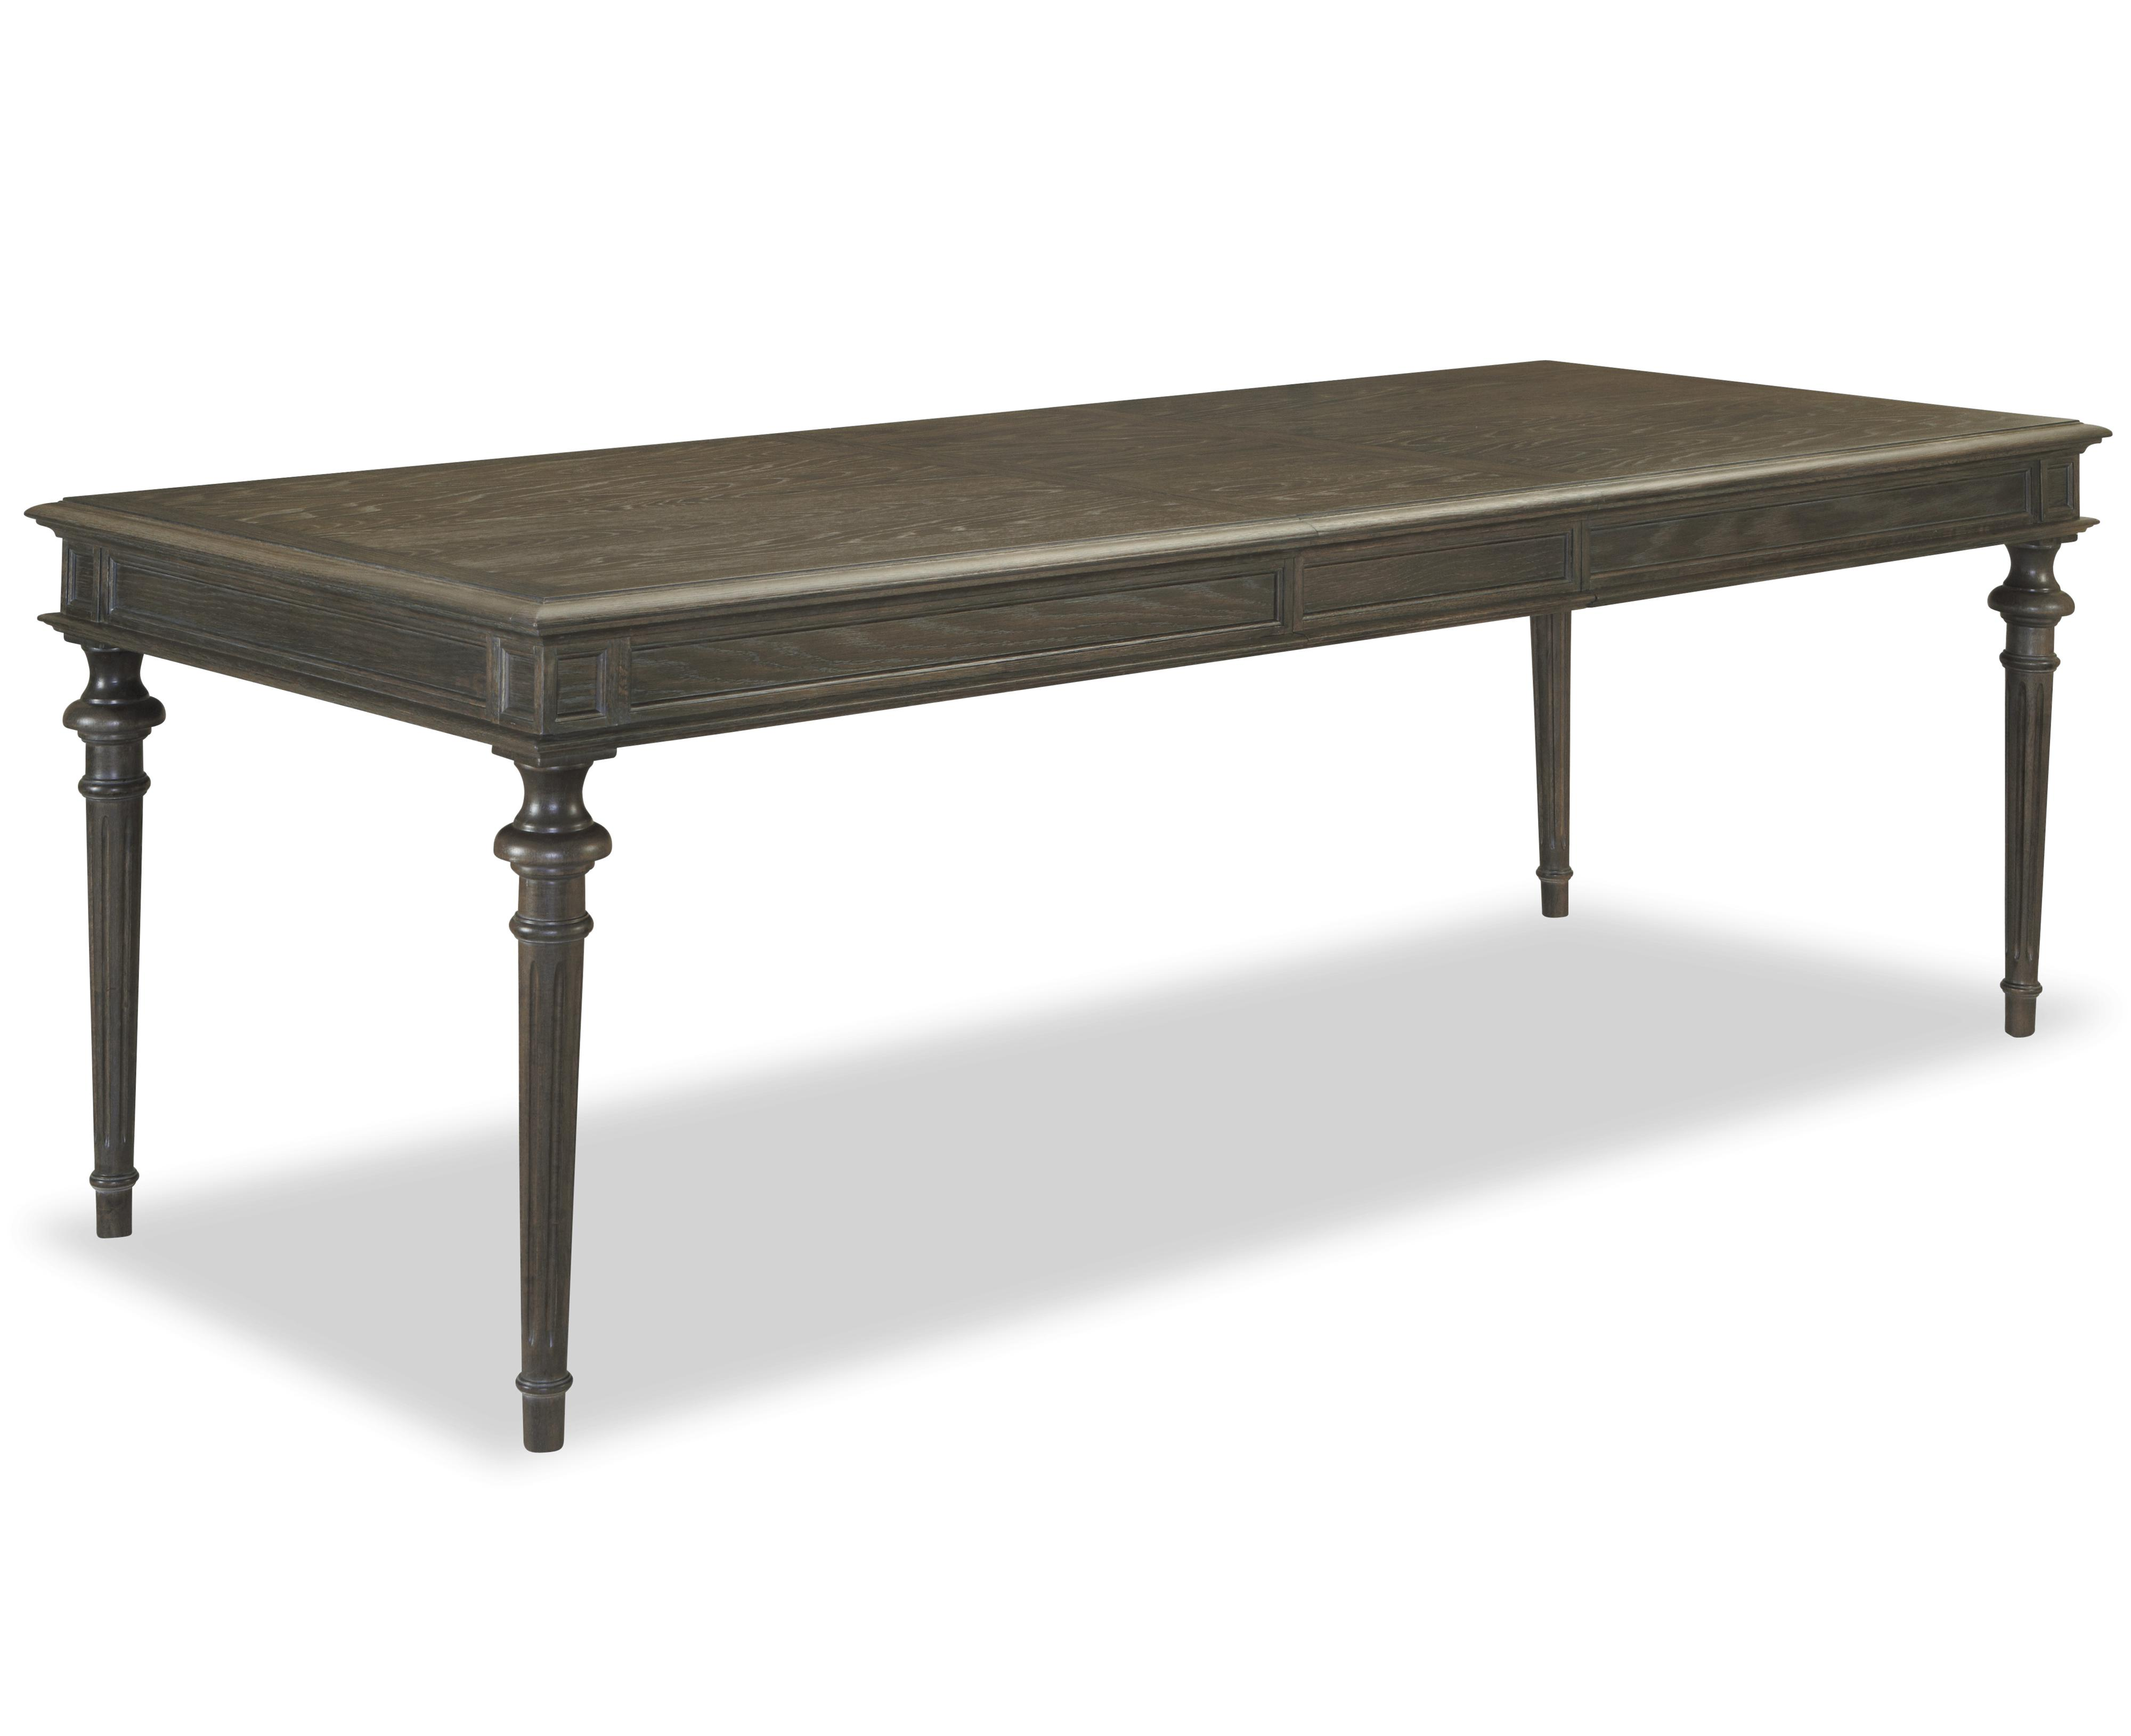 Universal curated tribeca leg table with 18 inch leaf for Top rated dining tables